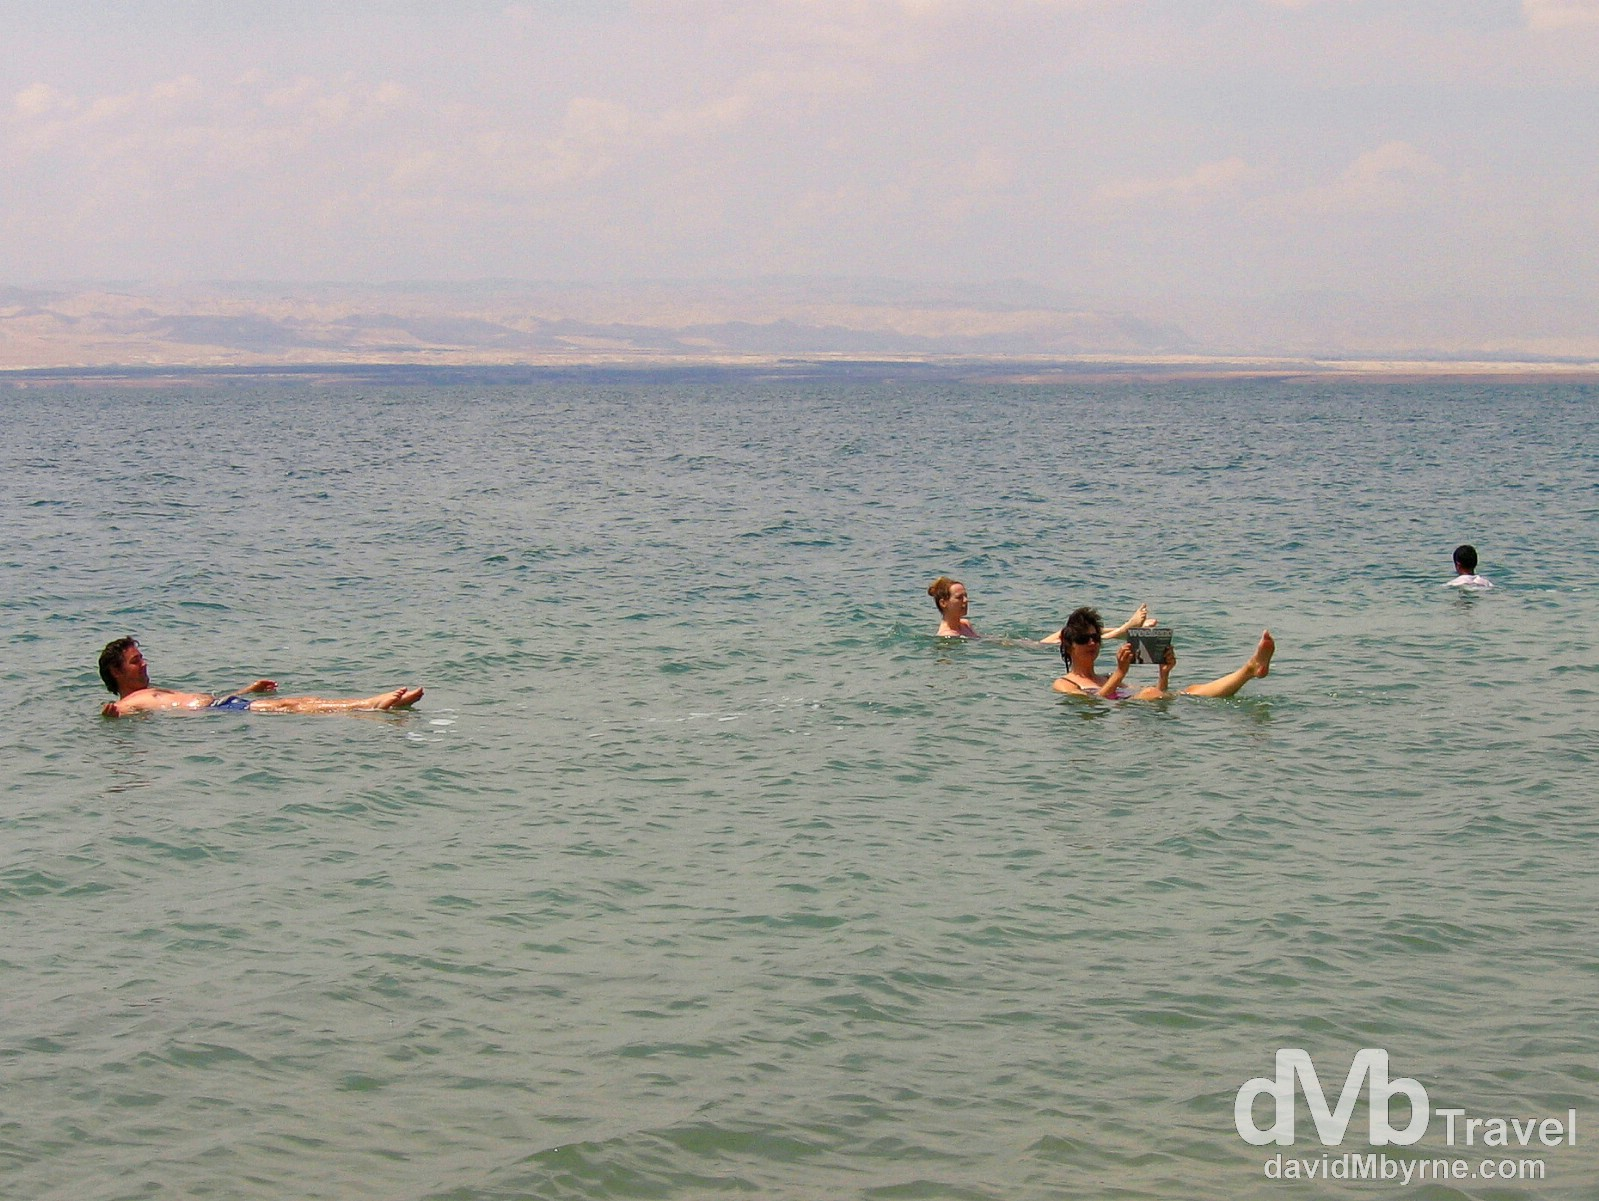 Mt. Nebo, Madaba & the Dead Sea, Jordan